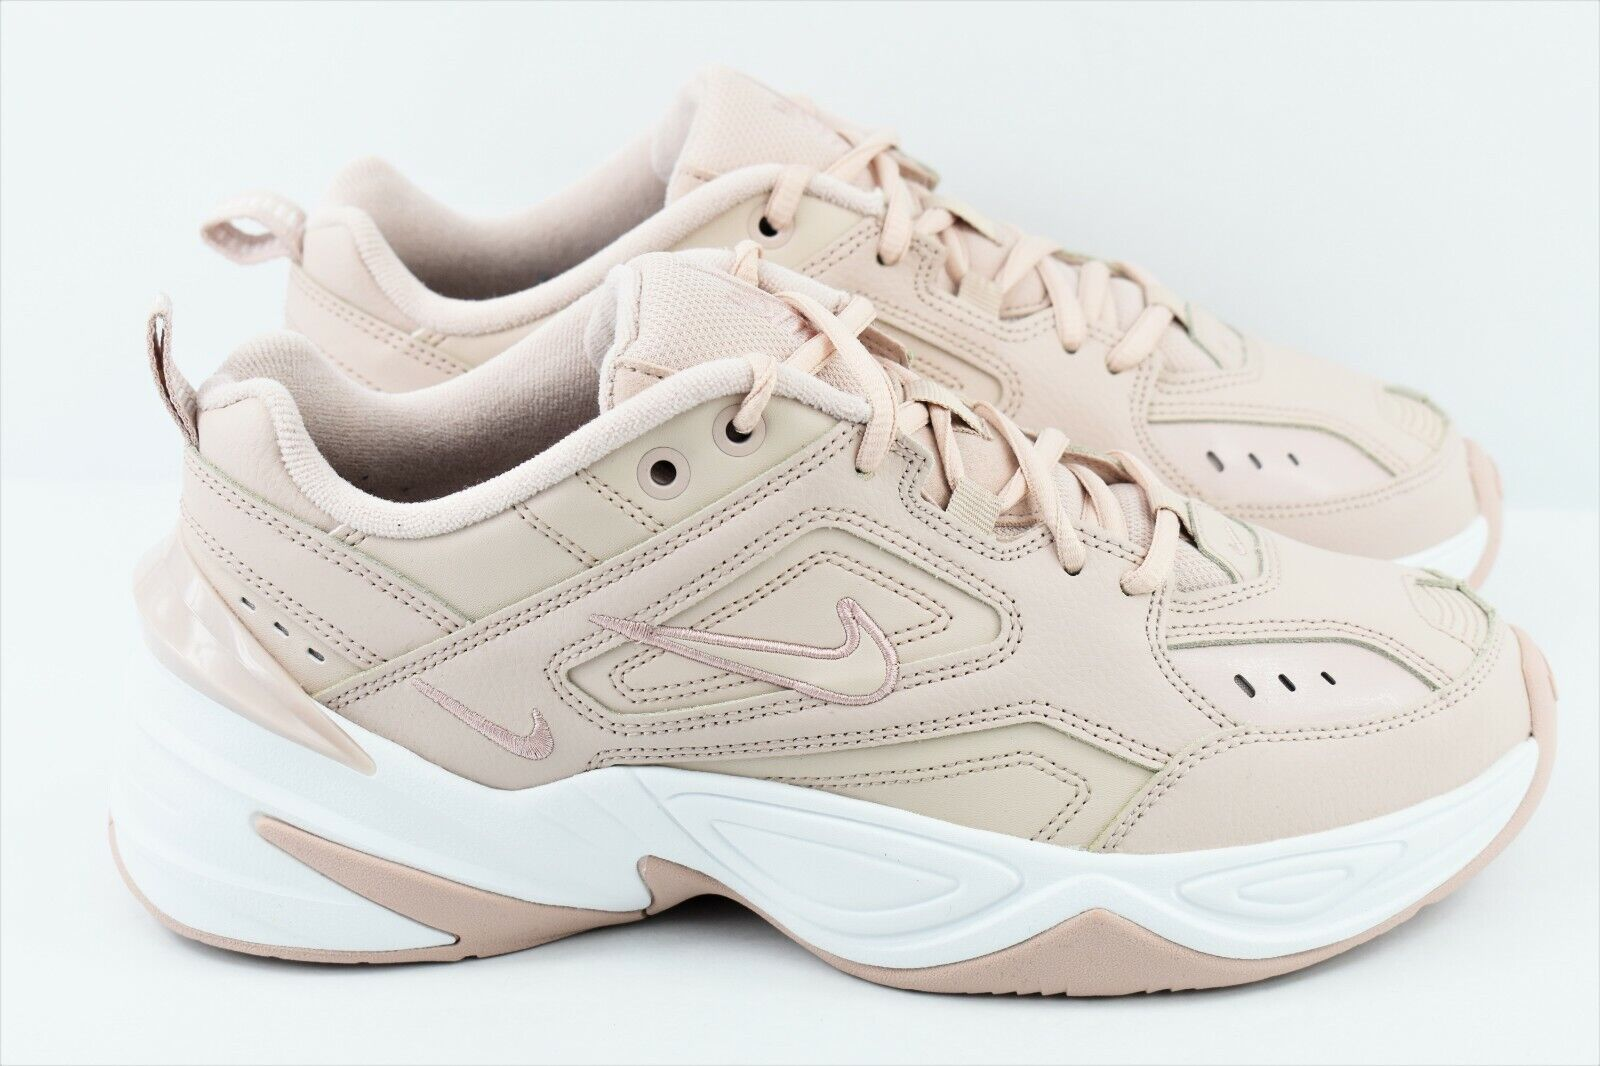 the latest 0d00e ddd4f Womens Nike M2K Tekno Size 9.5 shoes Particle Particle Particle Beige Pink  AO3108 202 272965